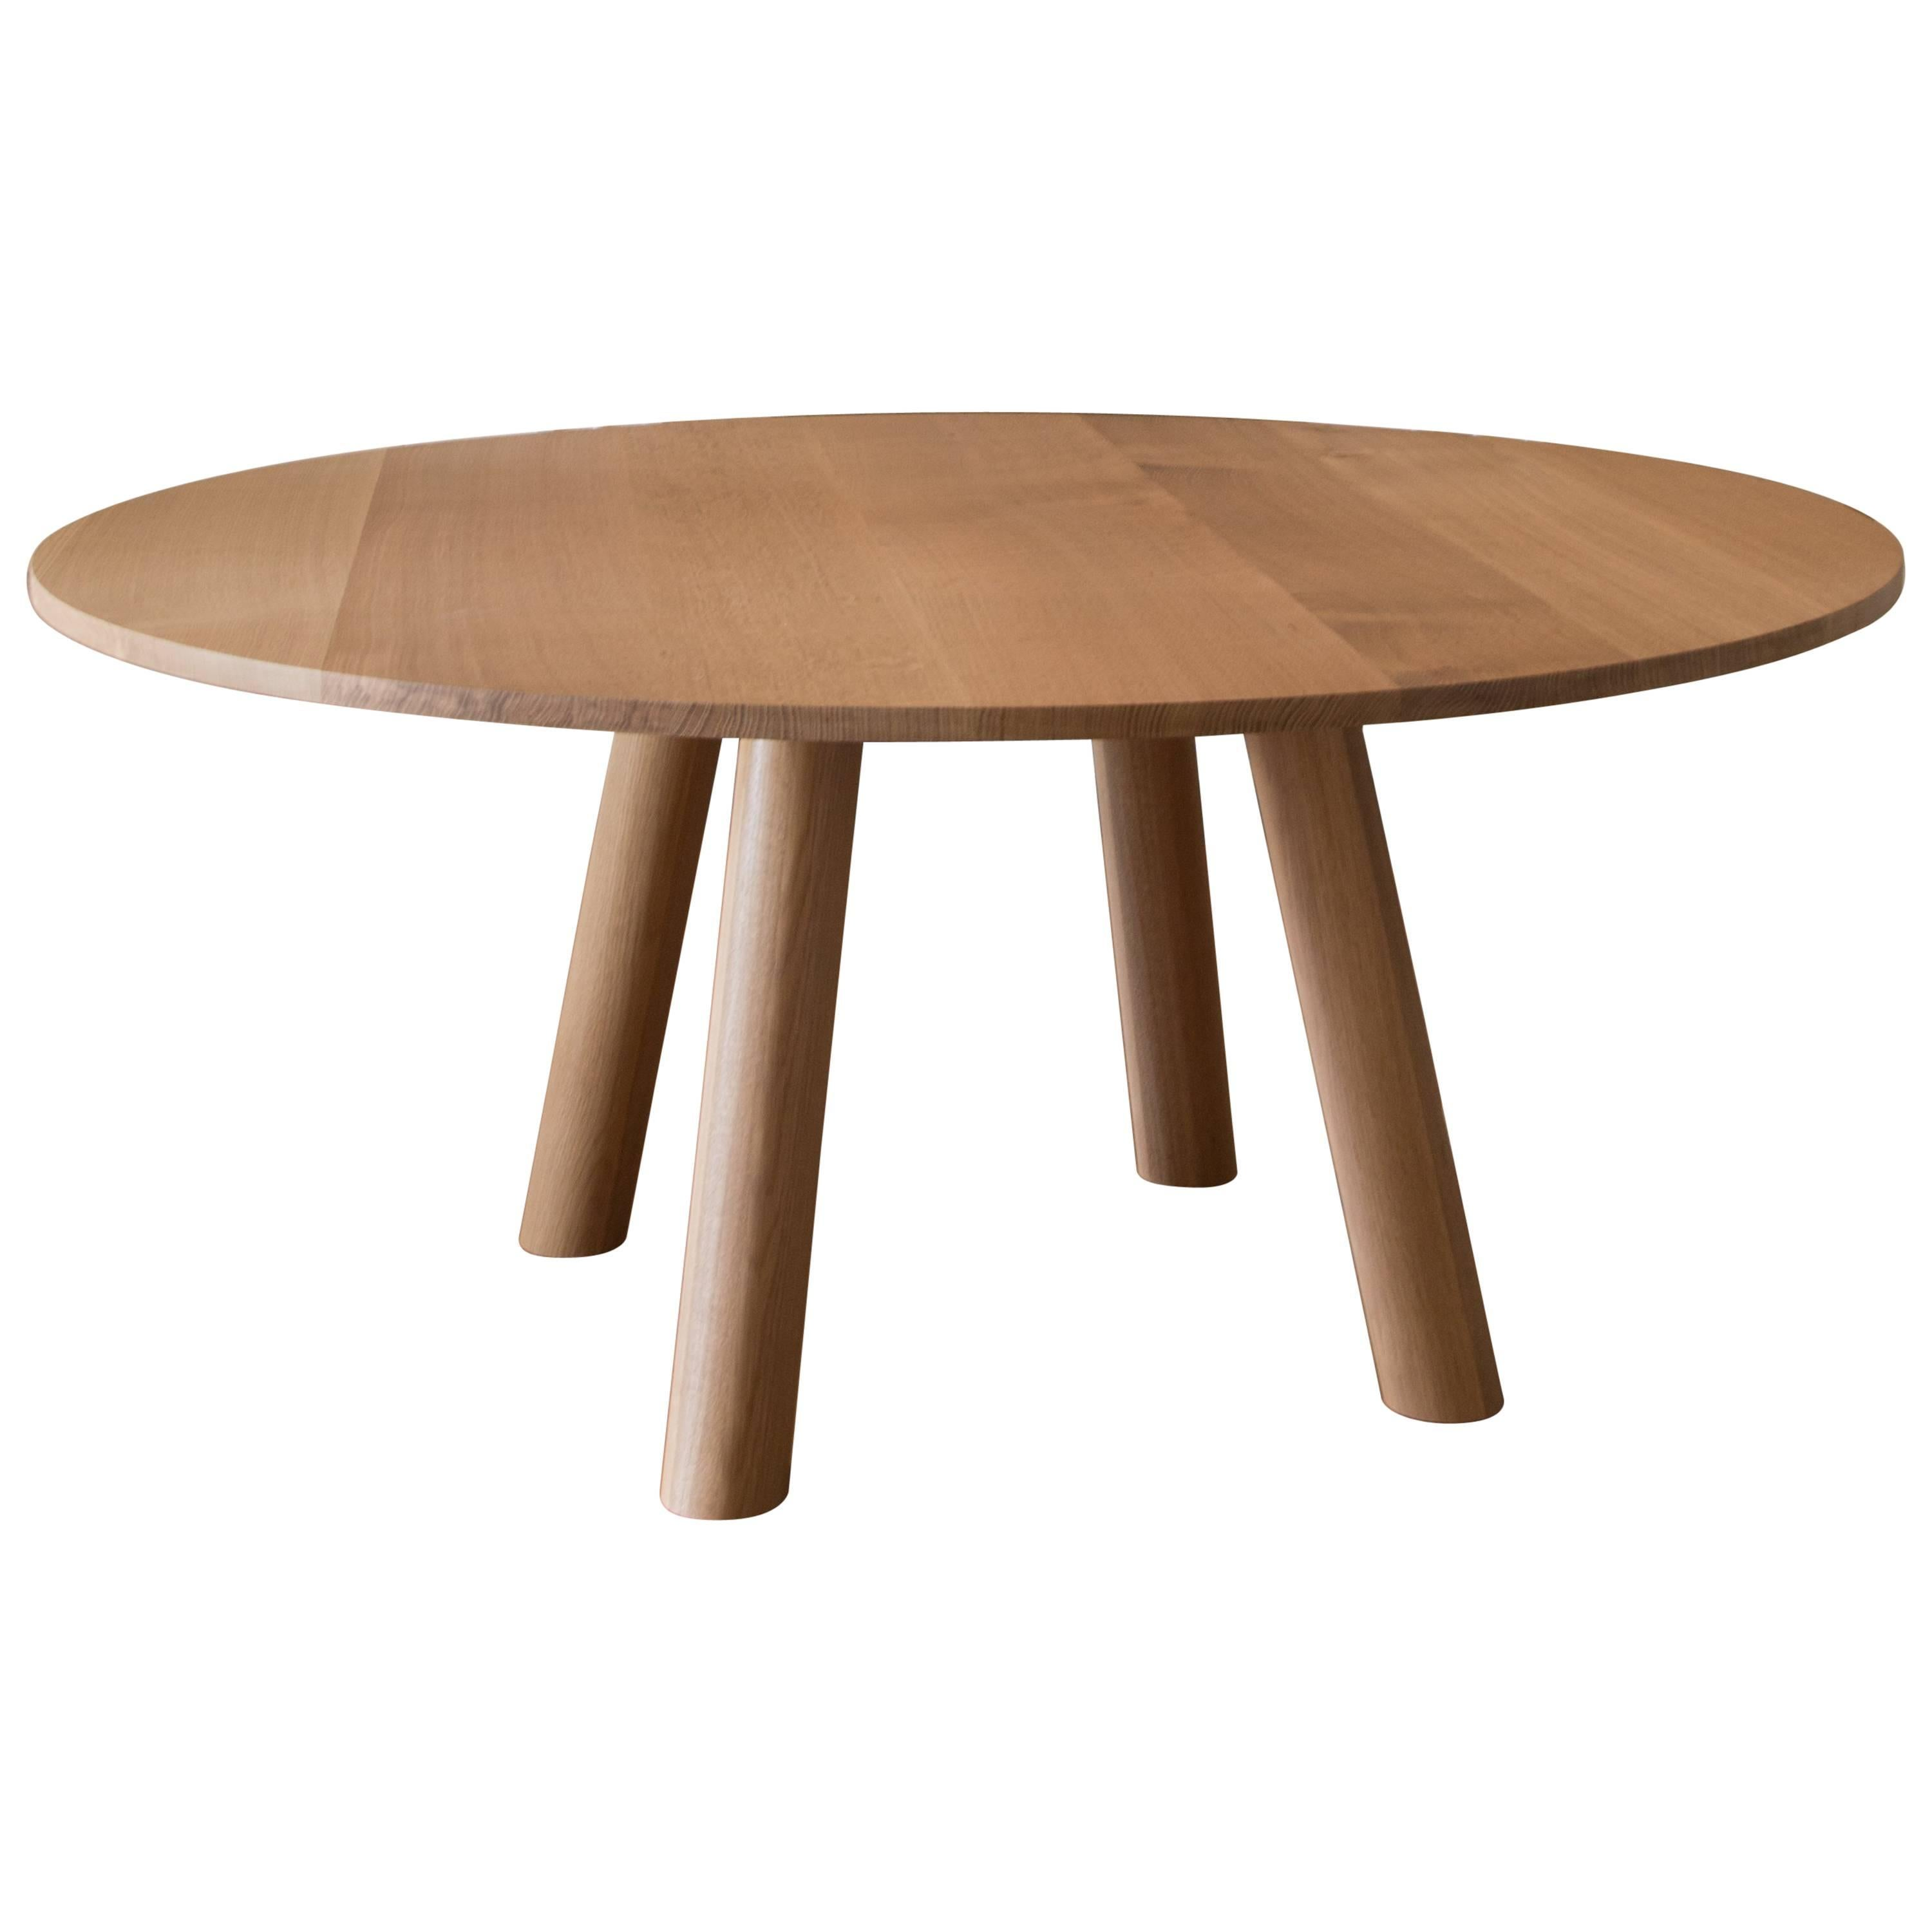 Contemporary Wood Round Column Dining Table in White Oak by Fort Standard